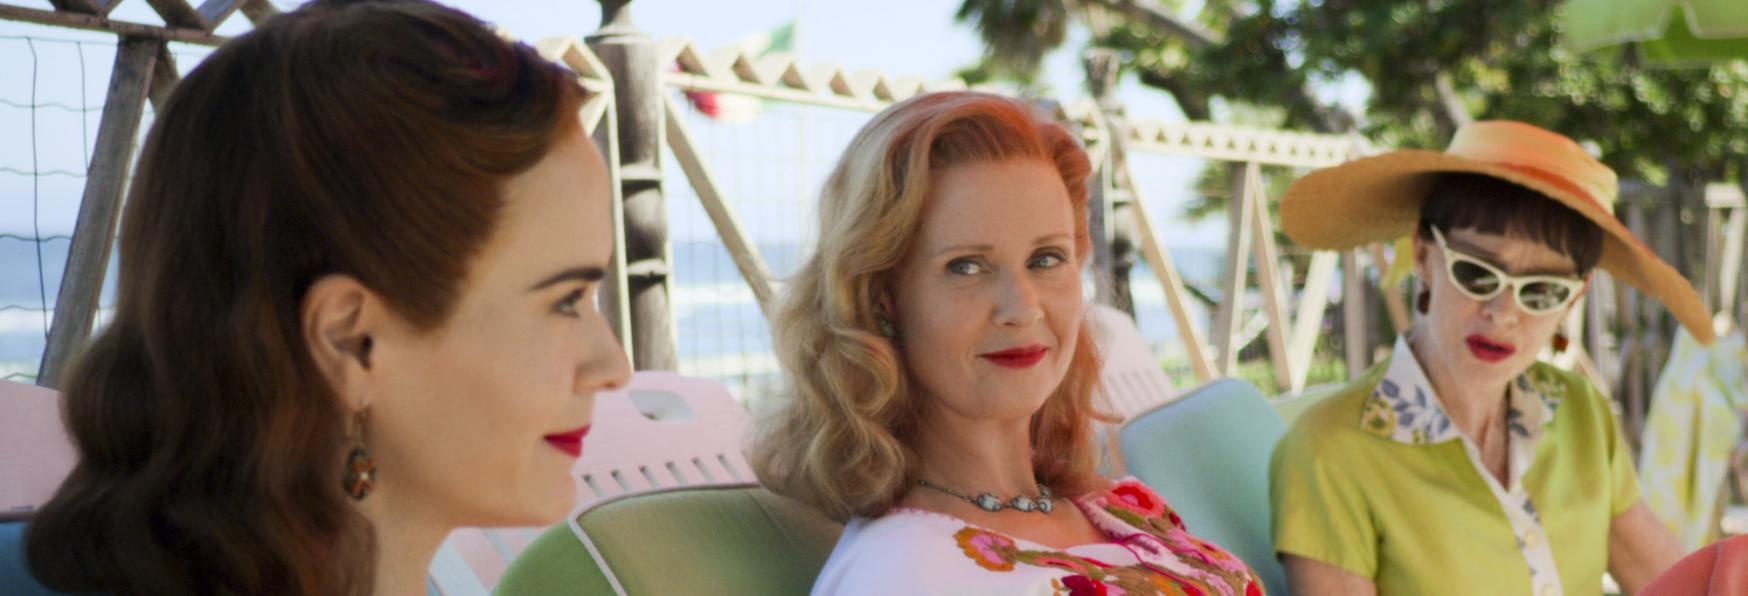 Vedremo Cynthia Nixon (Ratched) anche in American Horror Story e nel prequel The Gilded Age?